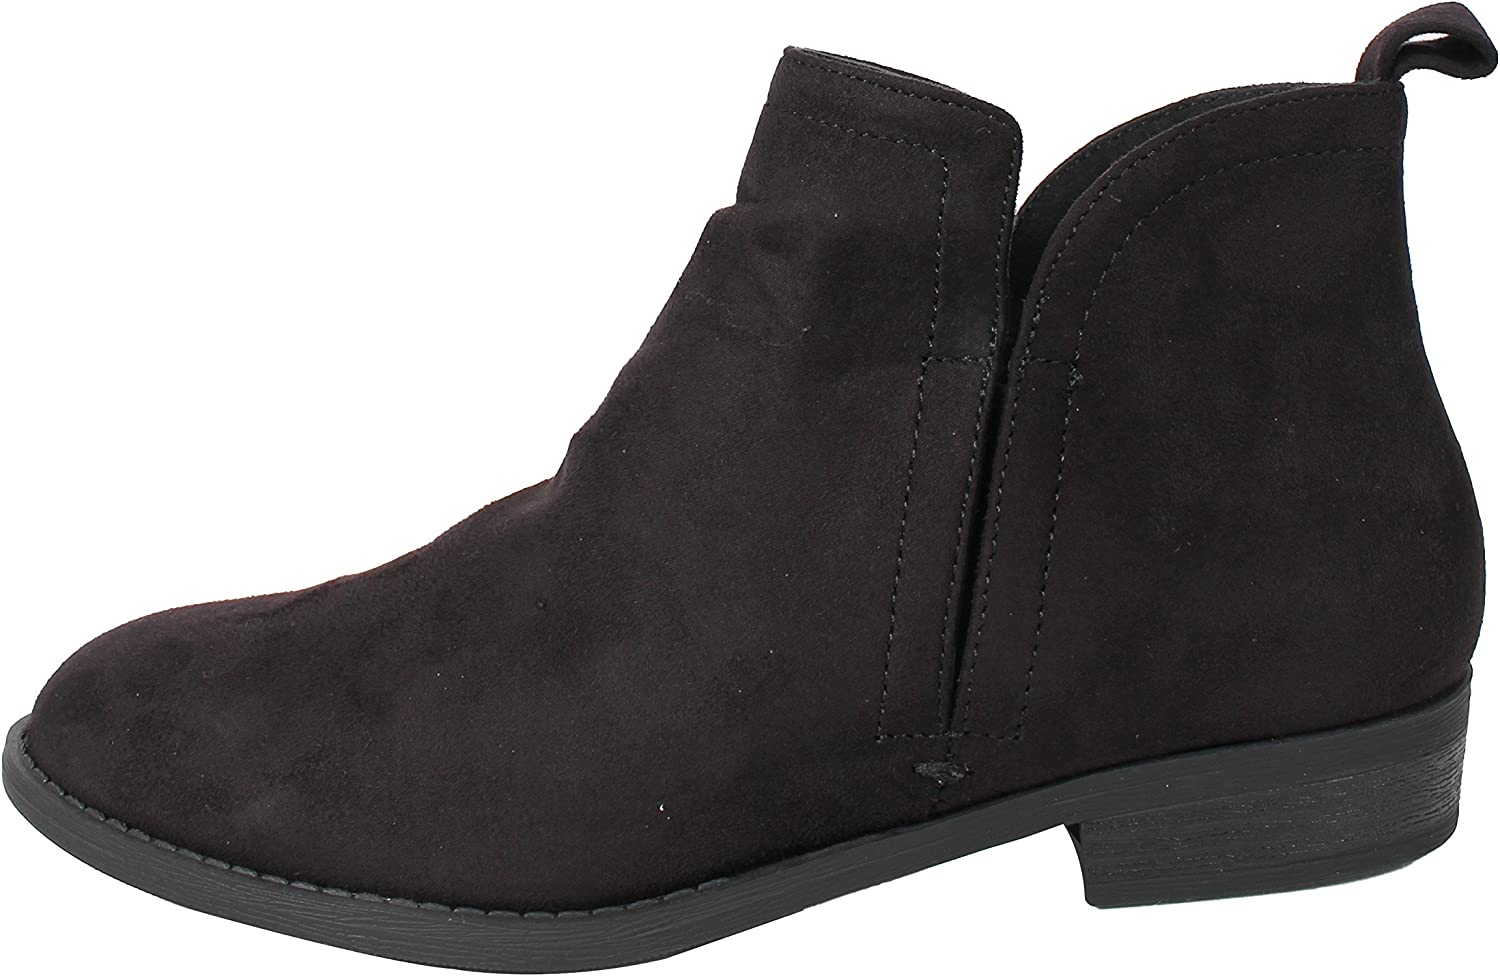 City Classified Women's Closed Toe Elastic Open Side Low Heel Pull On Tab Ankle Bootie